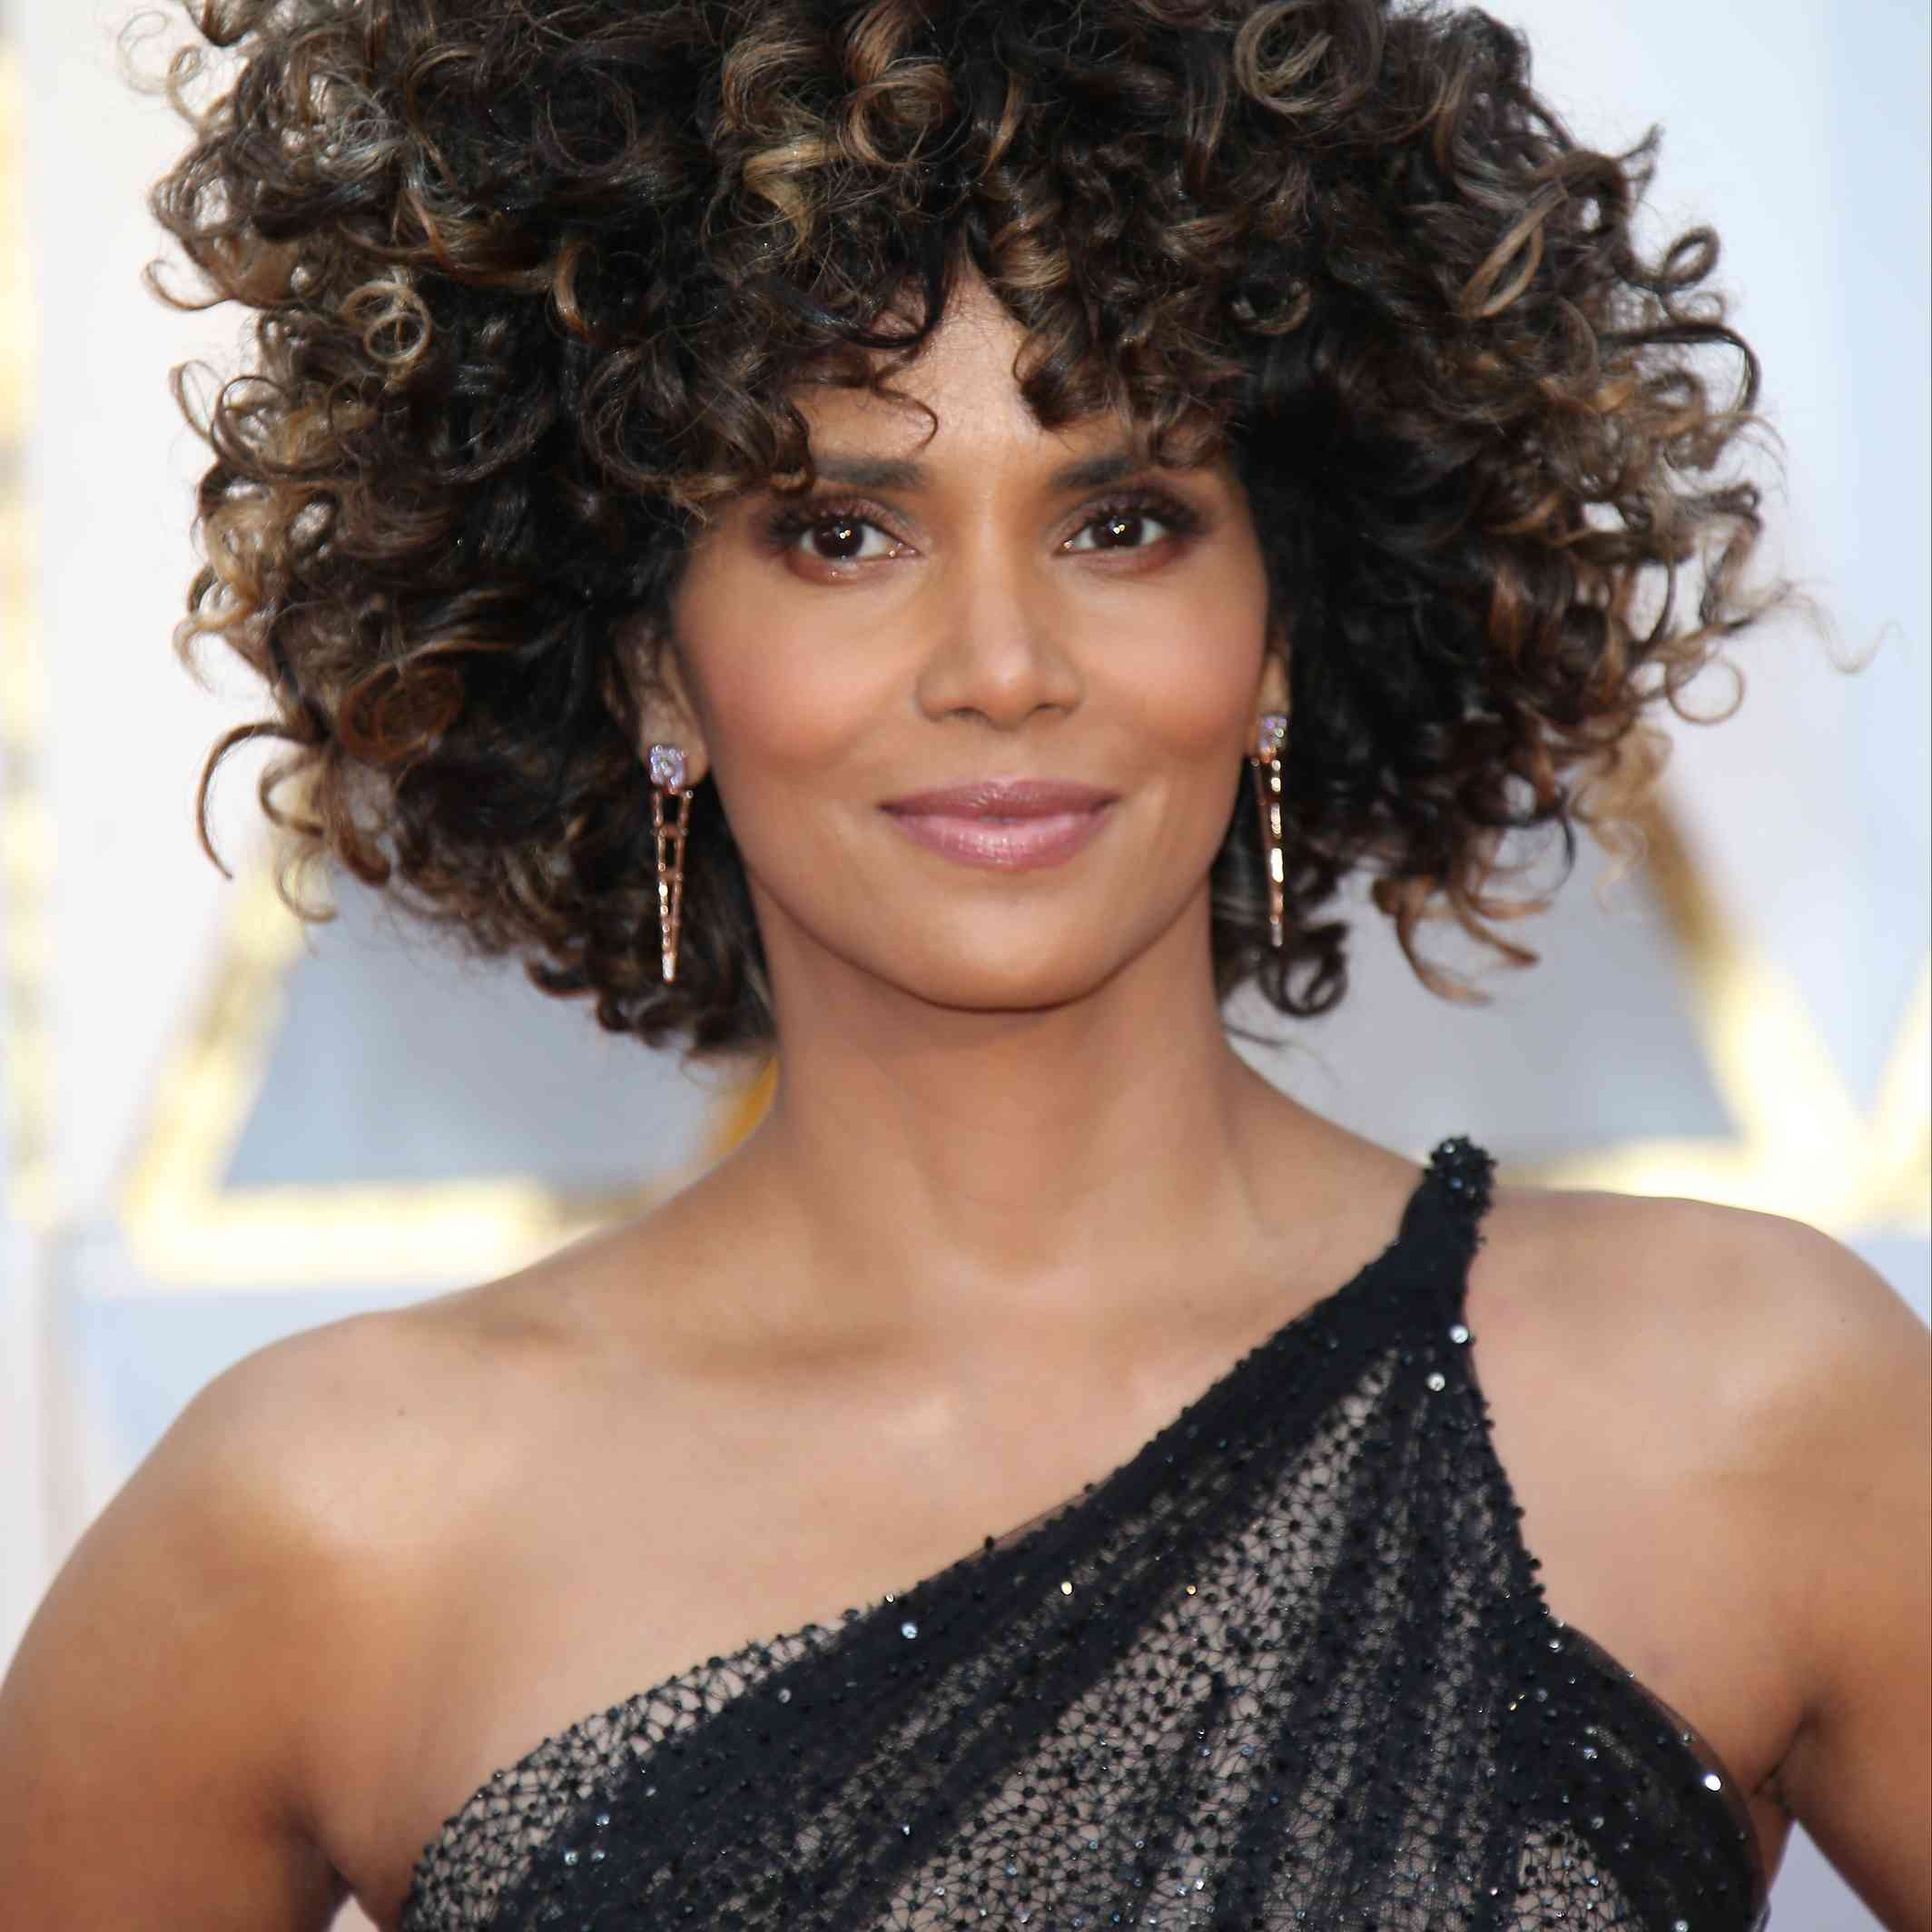 Halle Berry 89th Annual Academy Awards - Arrivals